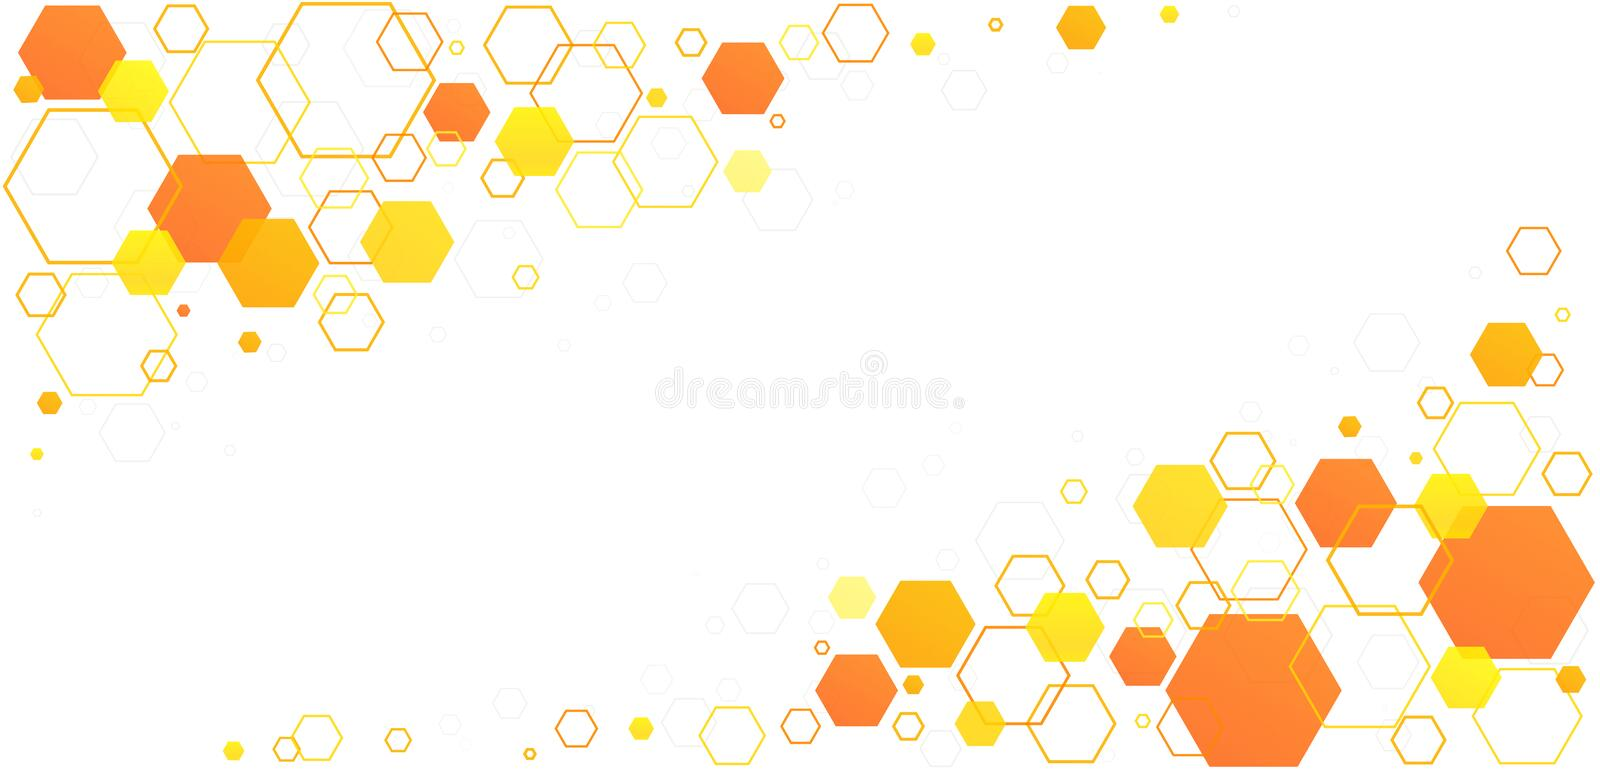 Honeycomb hexagon bee cells. Yellow-orange linear geometric pattern from beehive cells. Vector illustration stock illustration